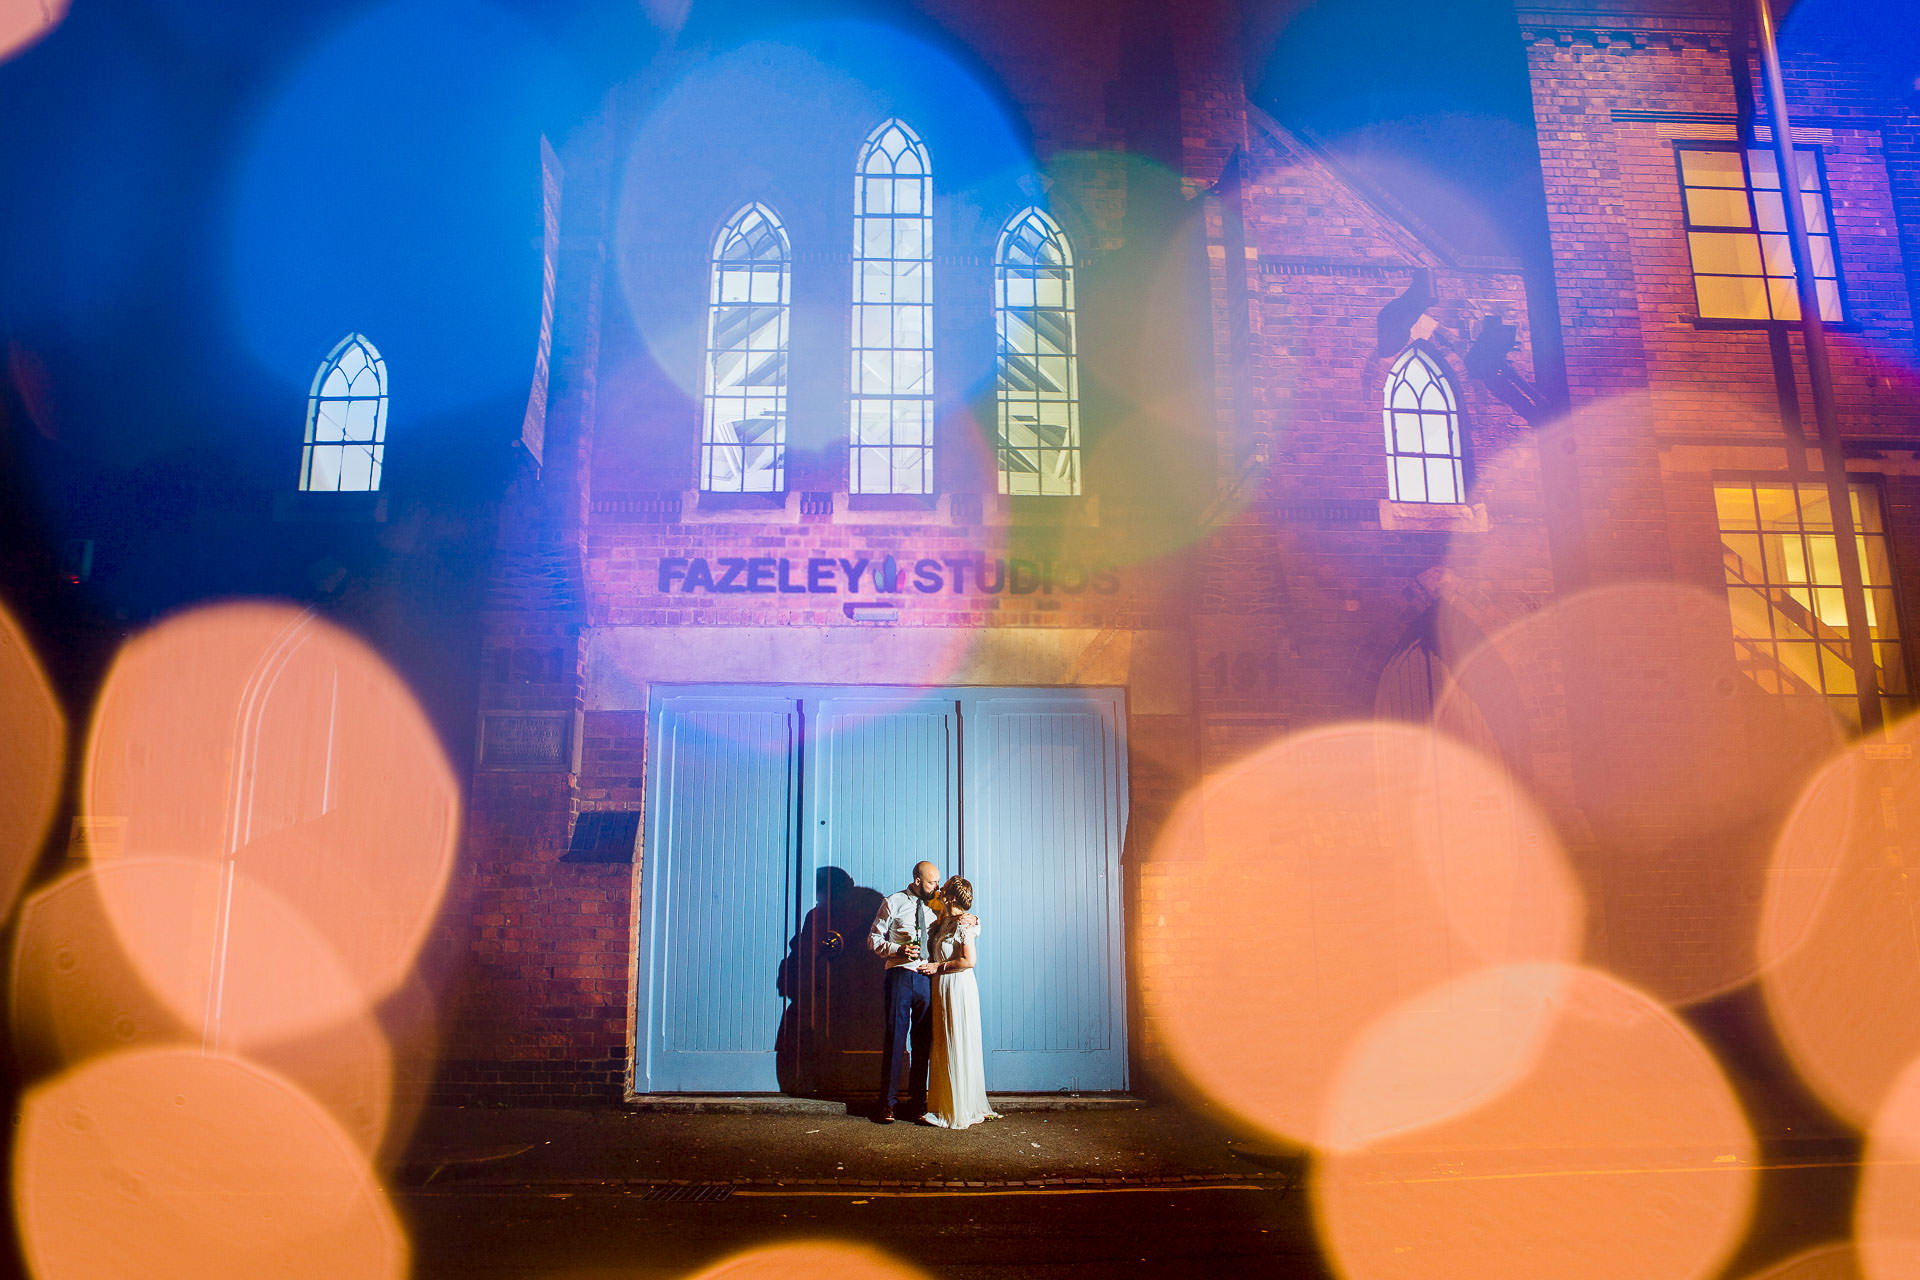 bride and groom standing in front of Fazeley Studios at night